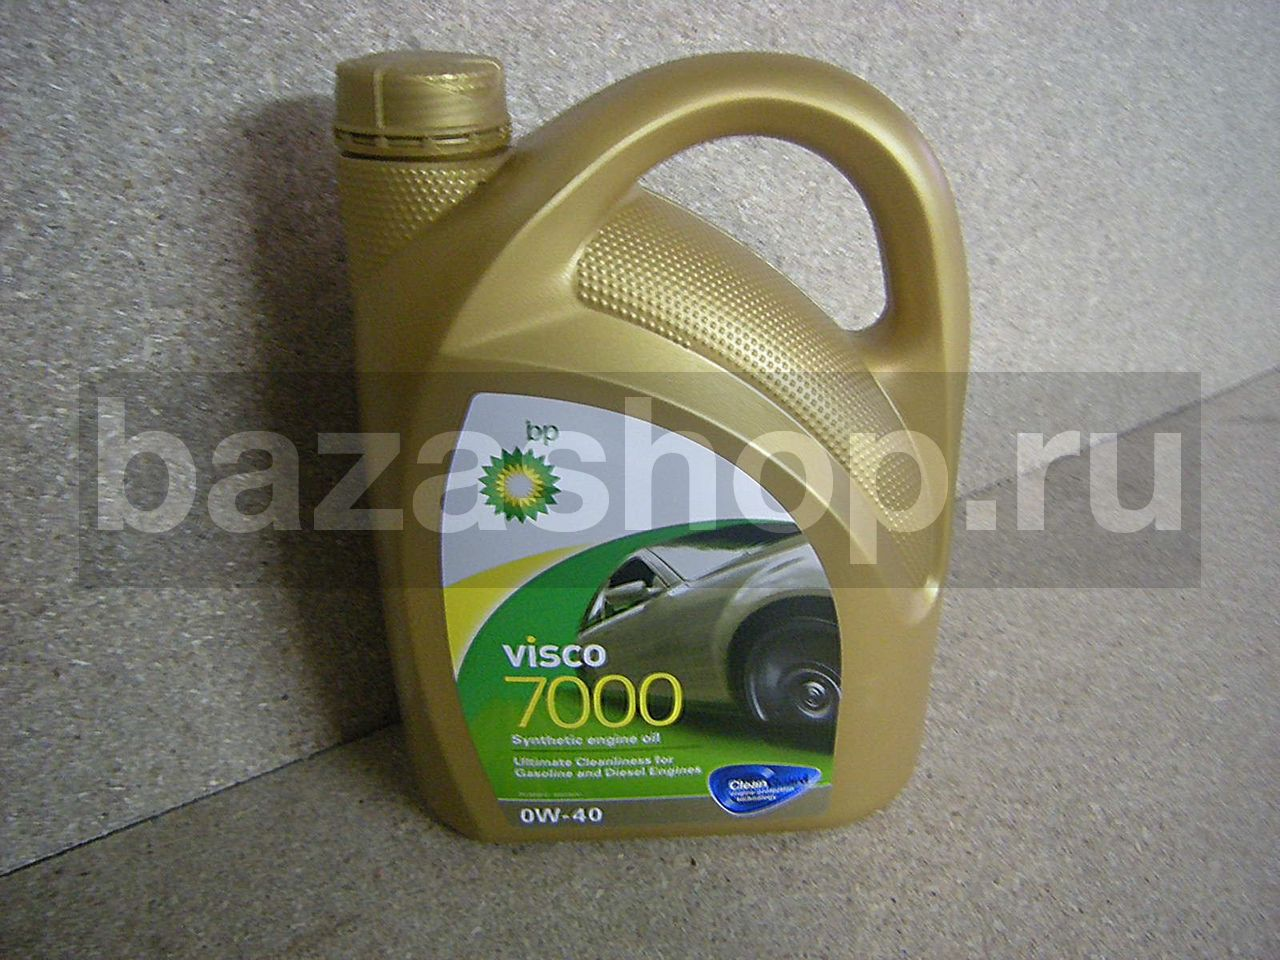 �����  BP Visco 7000 OW-40 4� (���������) / 4053430090/119369